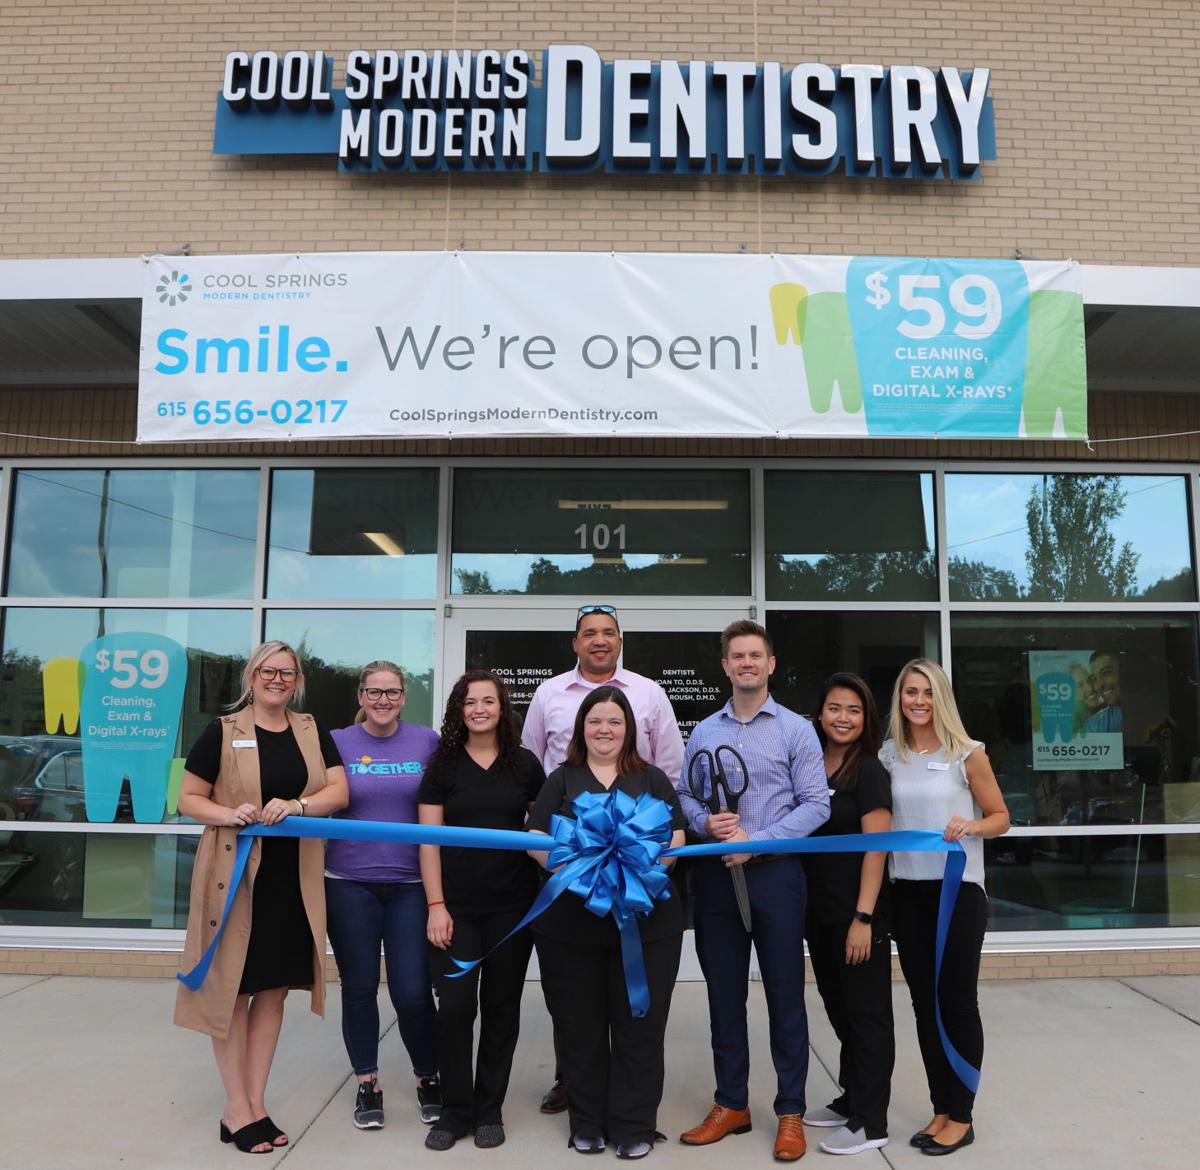 Cool Springs Modern Dentistry